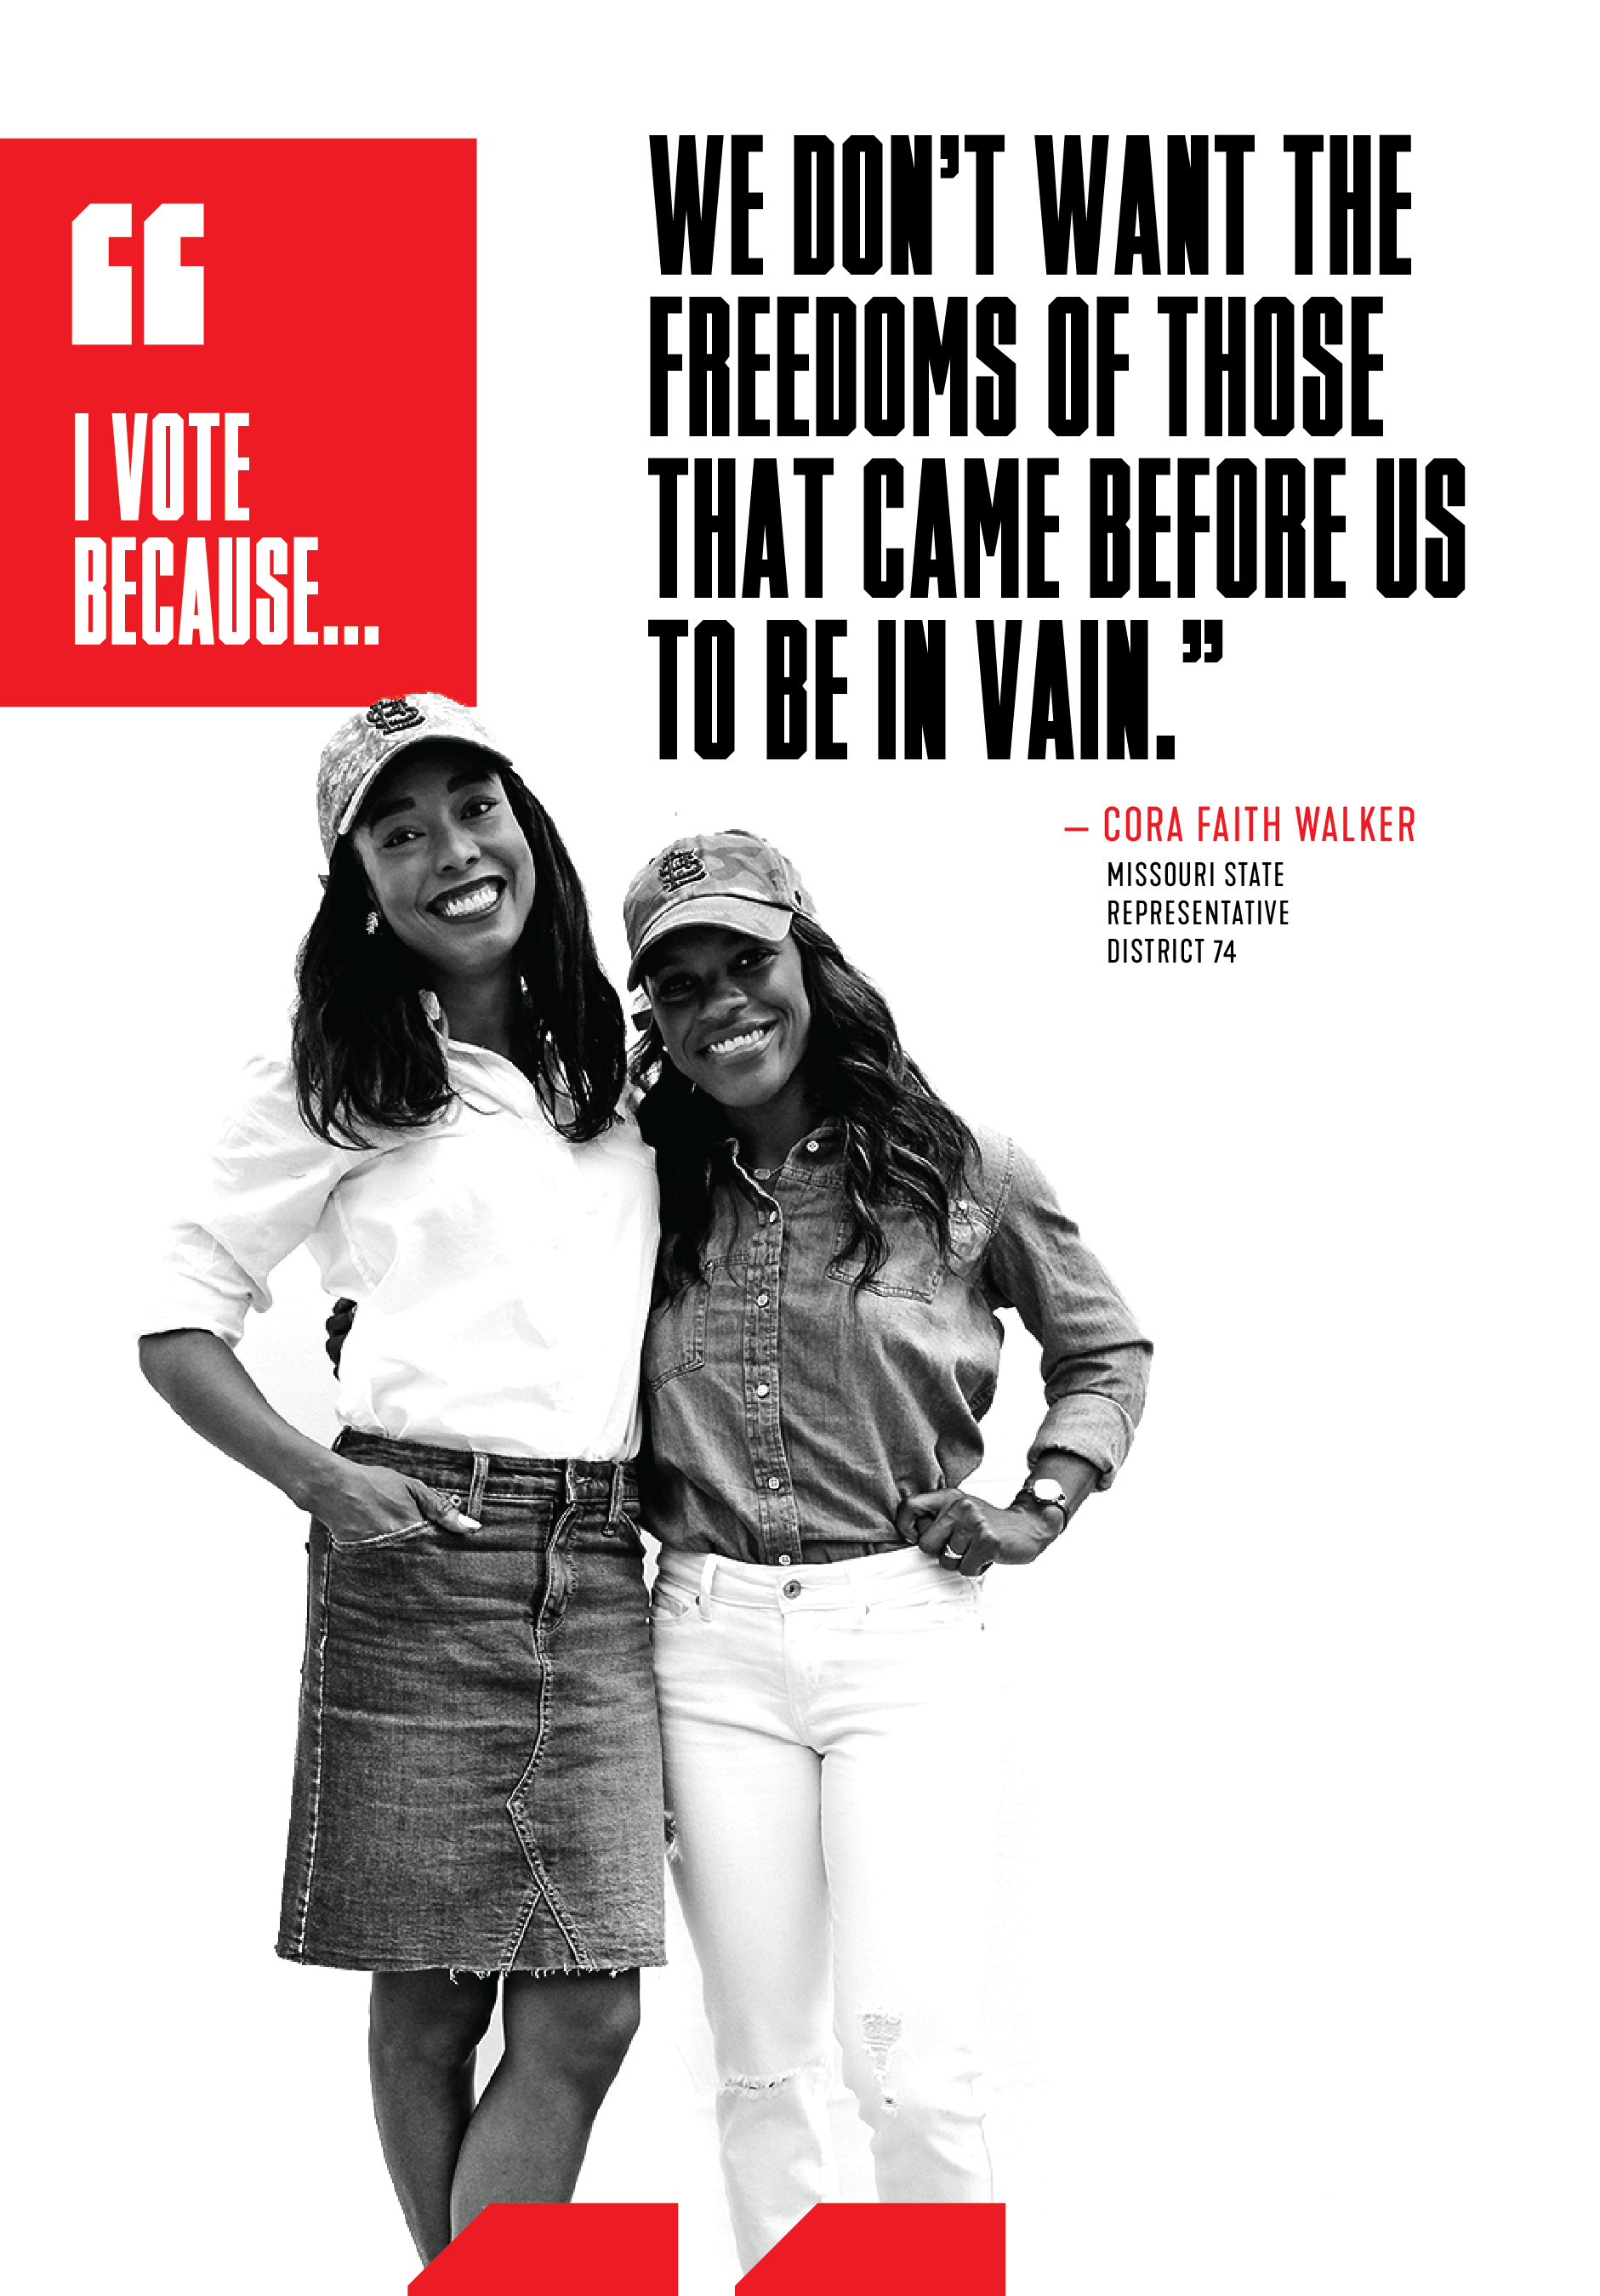 """Cora Faith Walker: """"I vote because we don't want the freedoms of those that came before us to be in vain."""""""